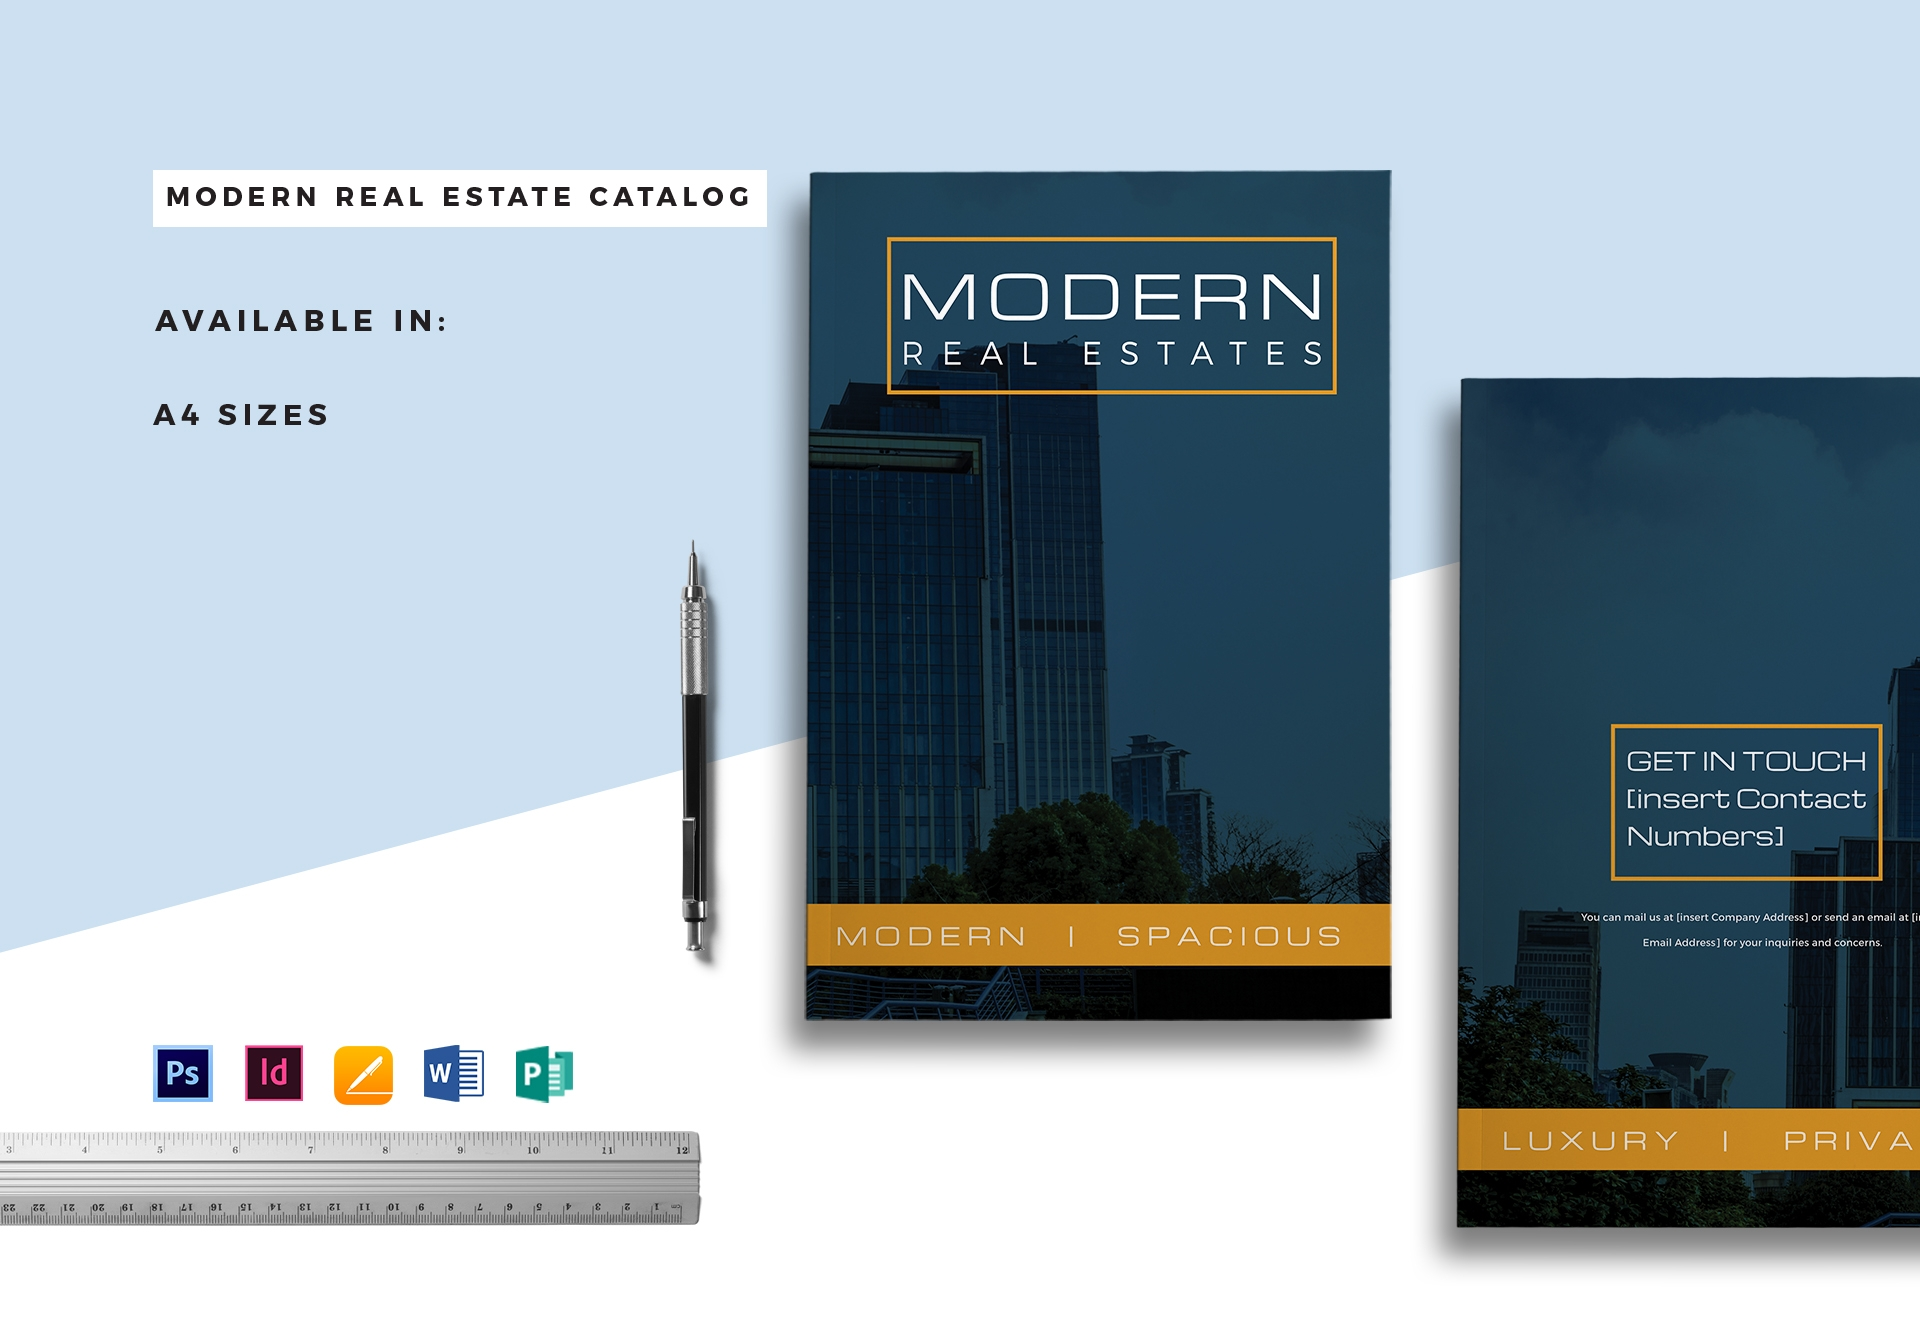 modern real estate catalog1